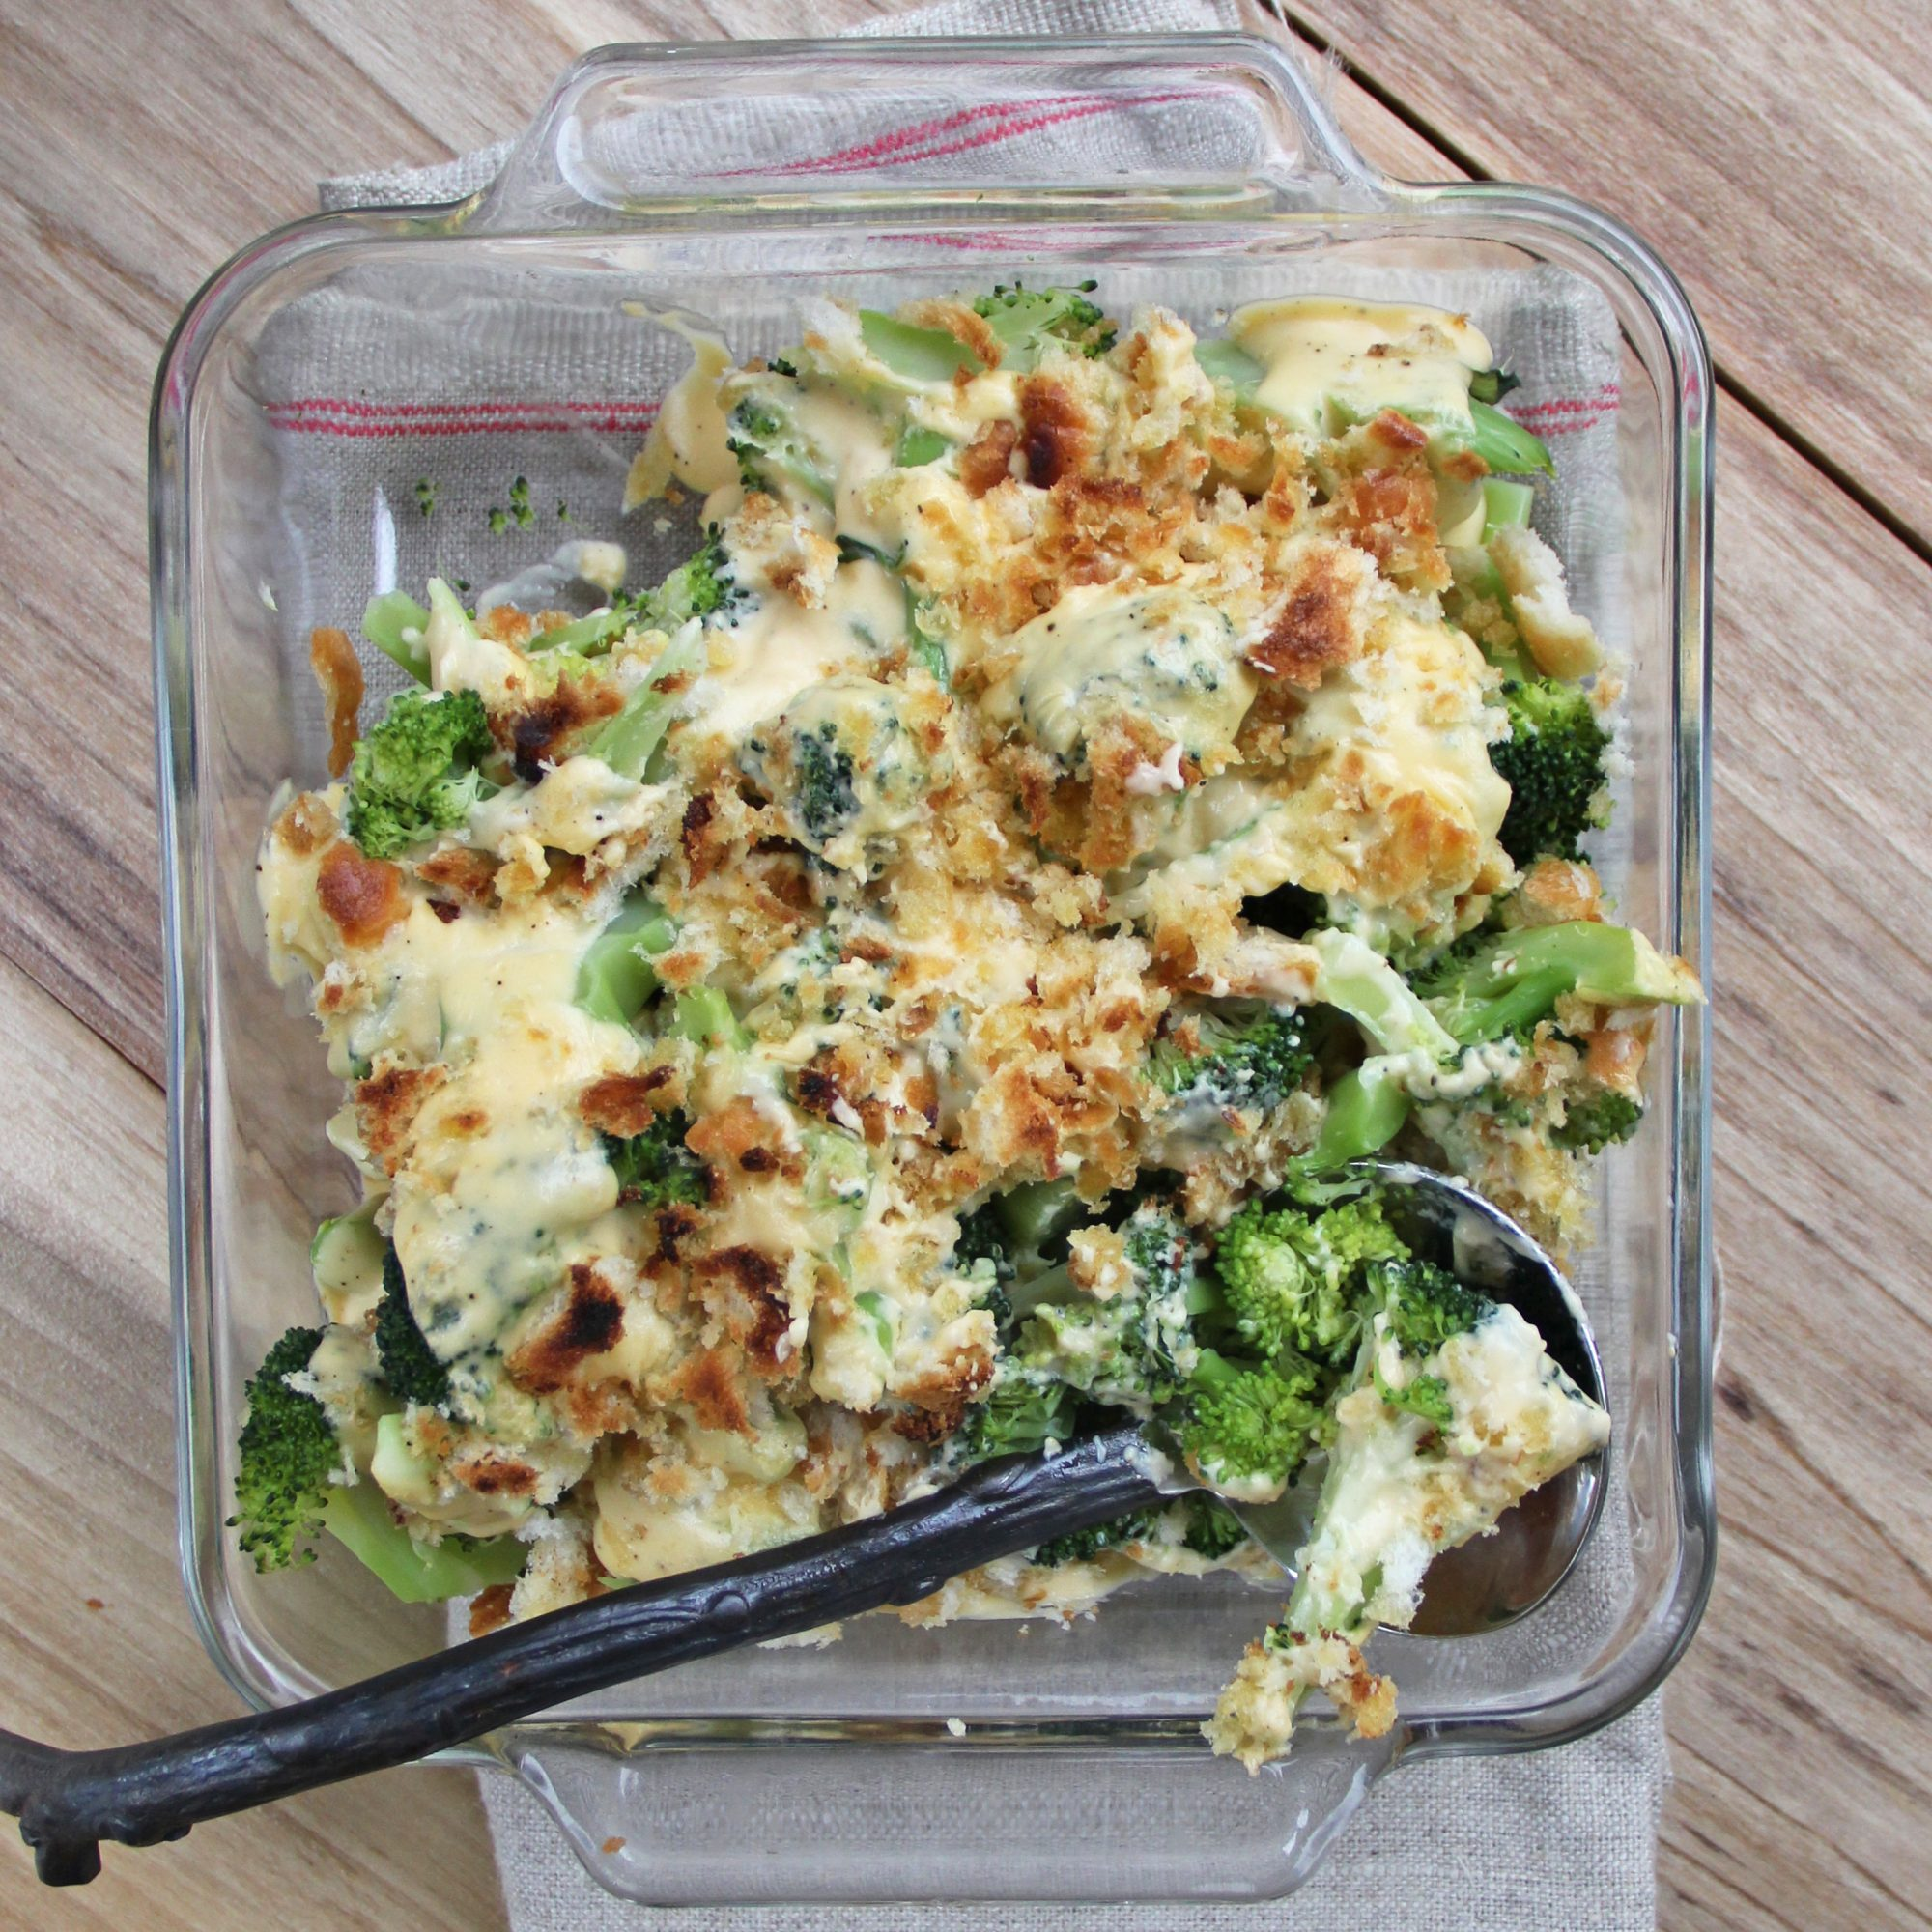 Broccoli and Cheddar Casserole with Leeks